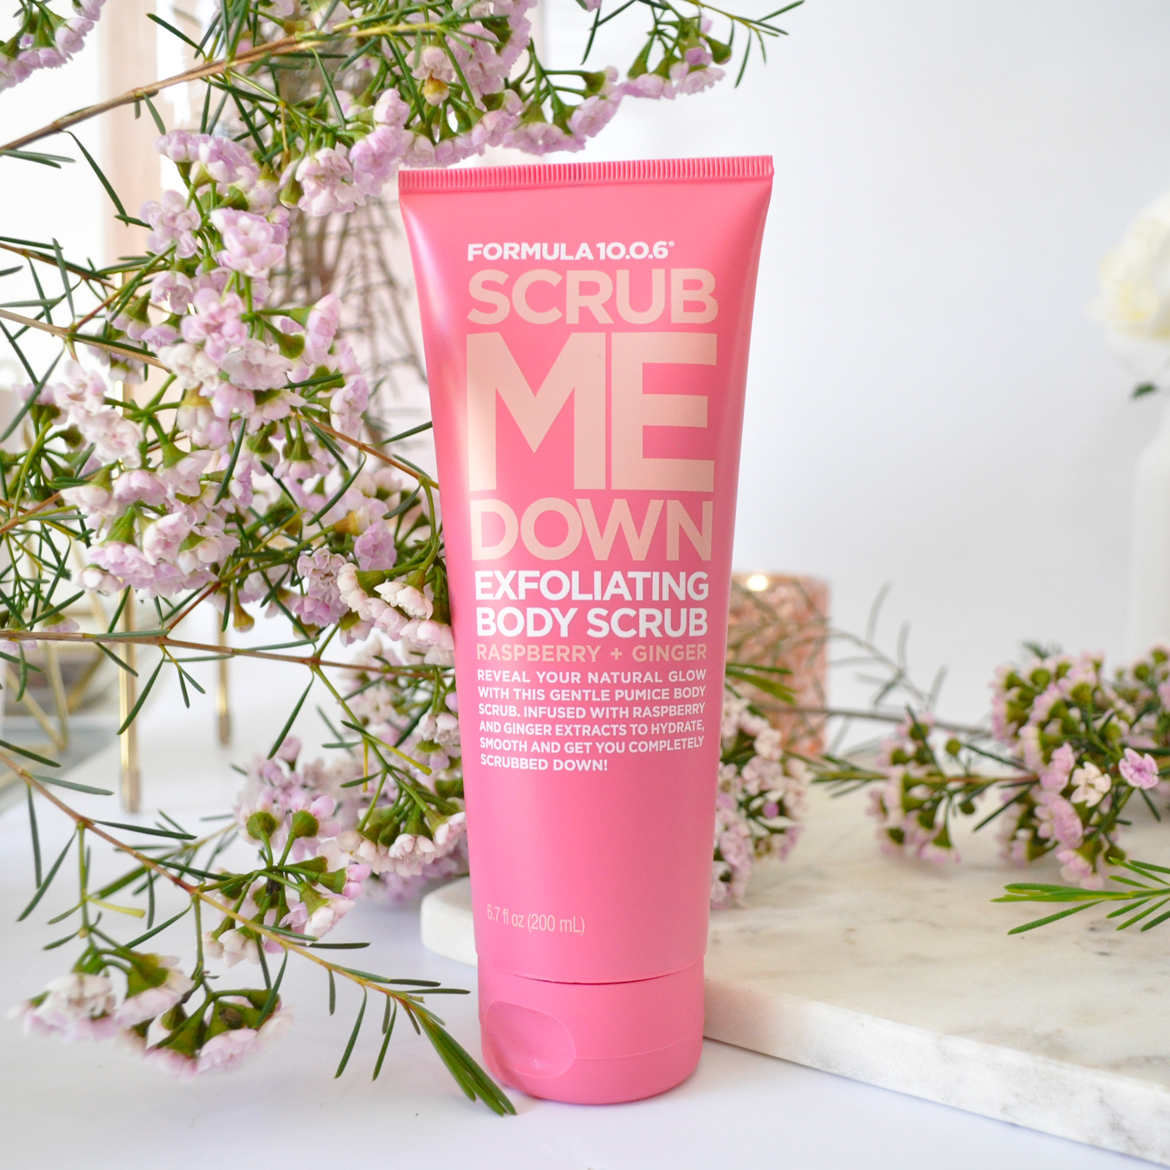 Formula 10.0.6 Scrub Me Down Exfoliating Body Scrub